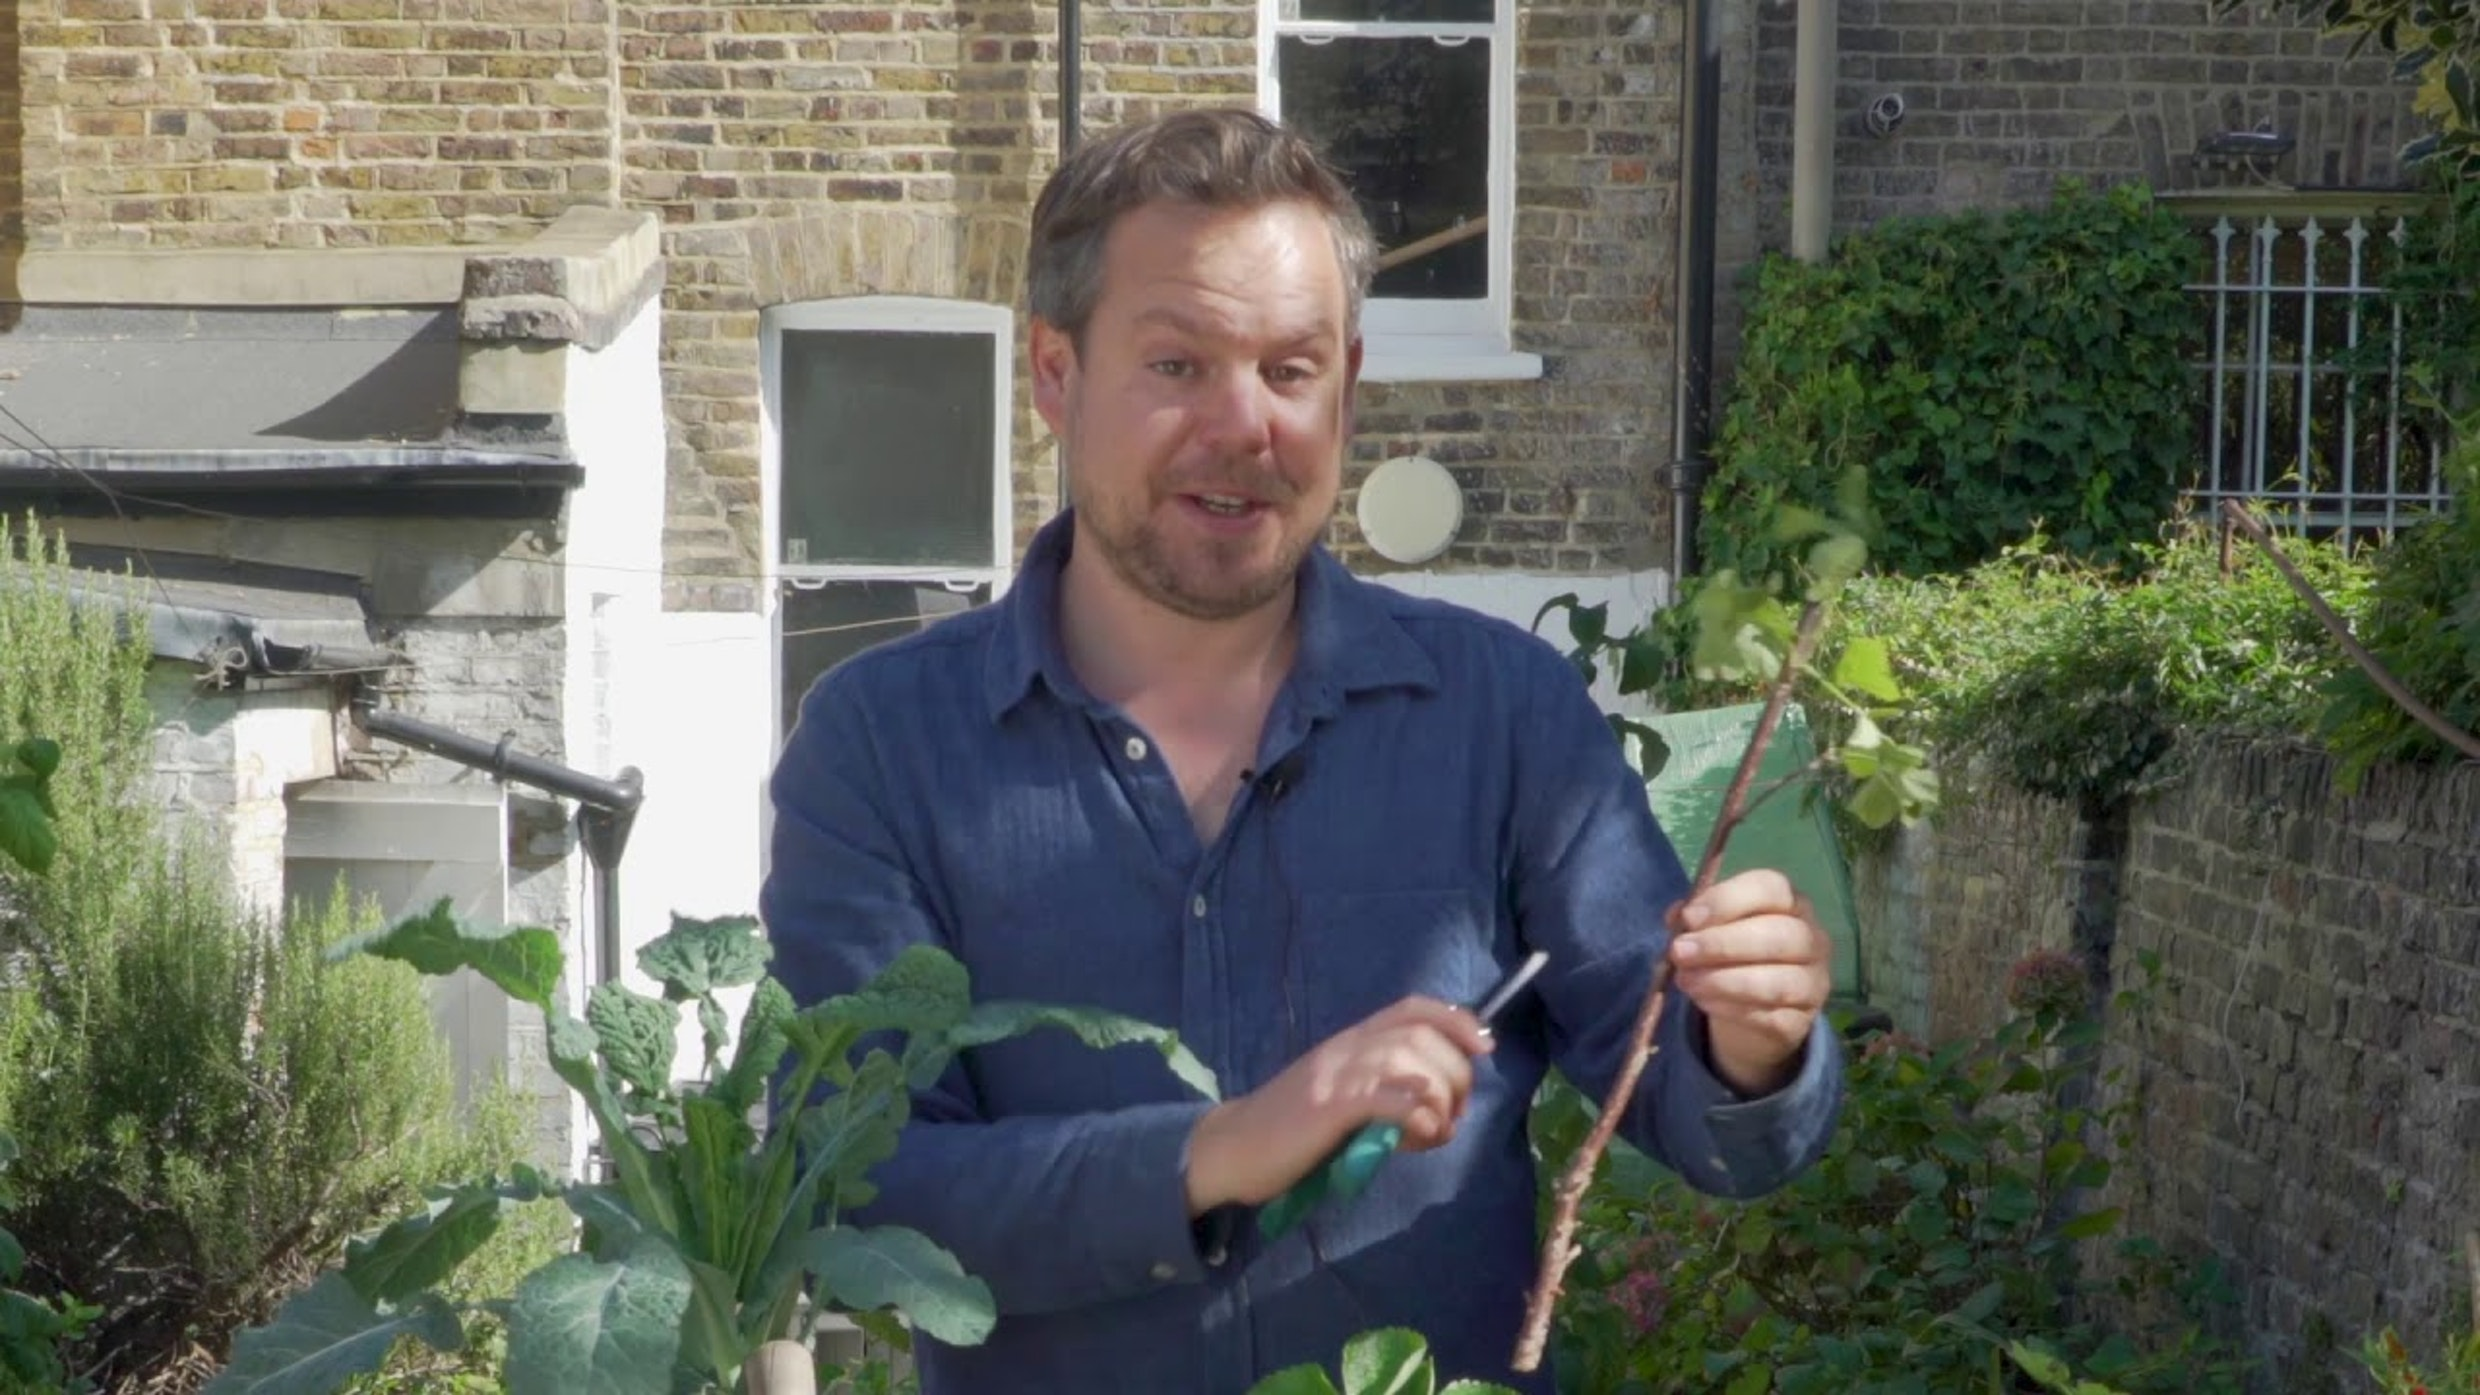 Phil from 'Green up your Act' holding plants